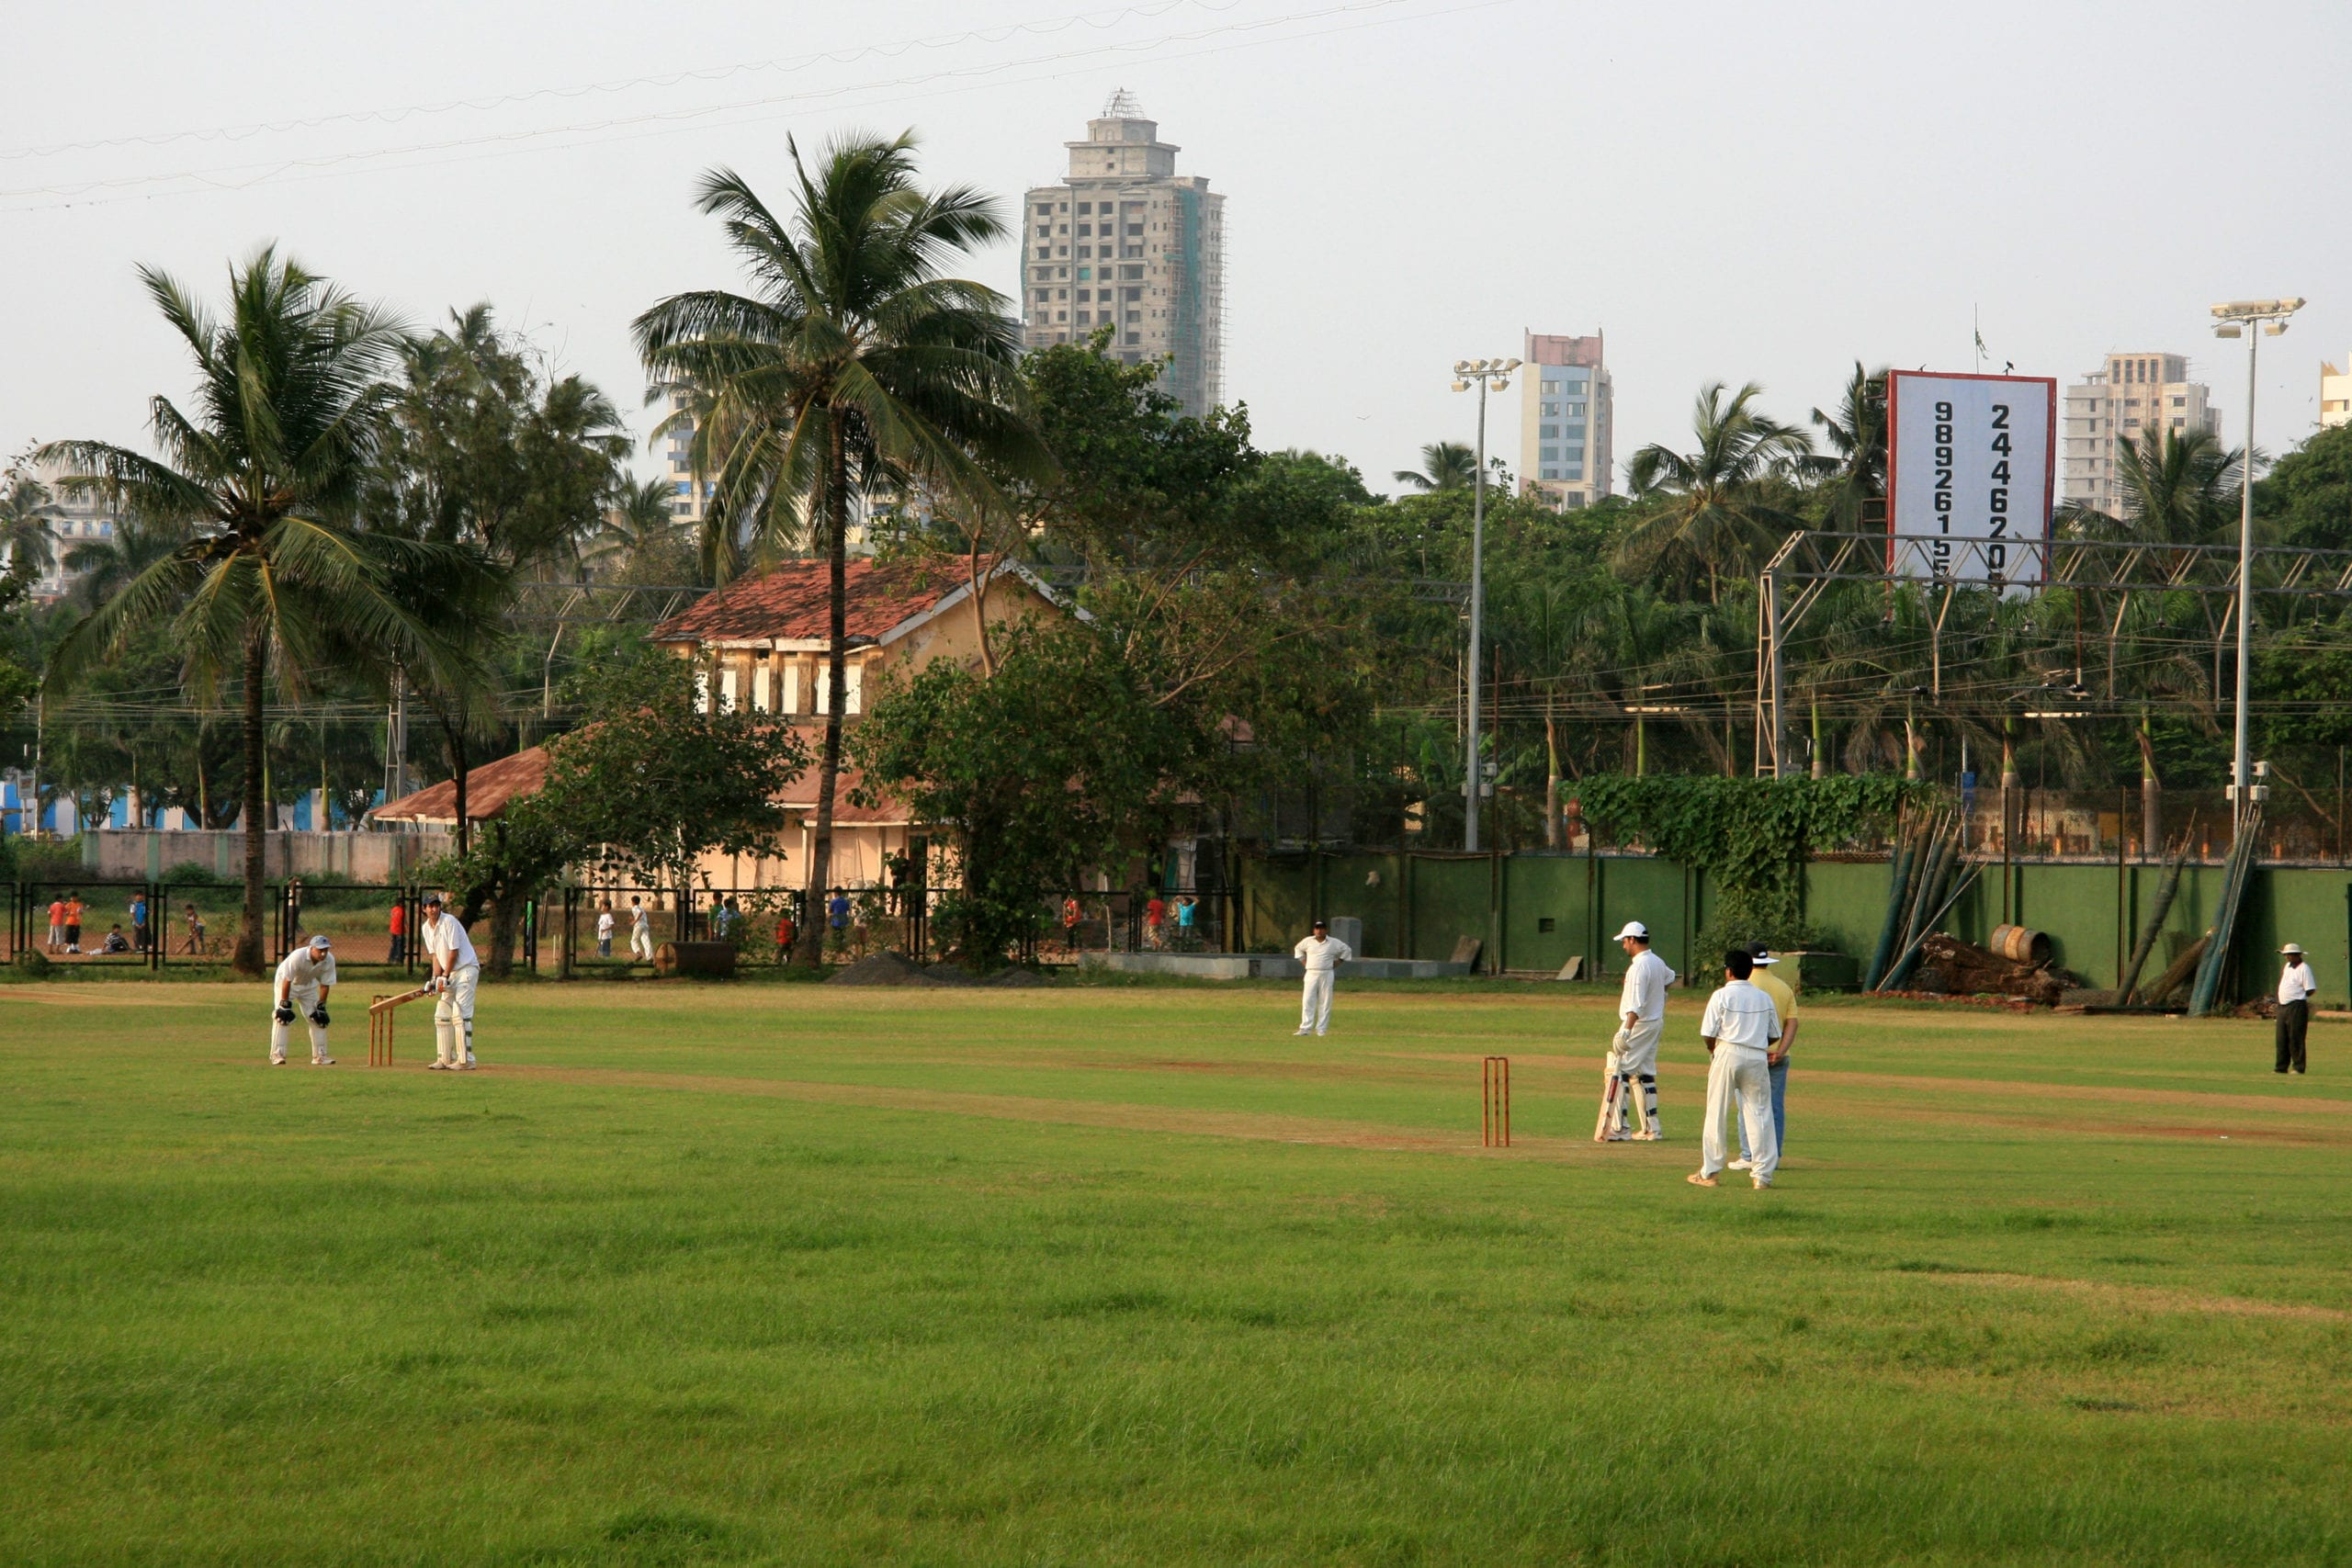 Marine Drive, Mumbai, India cricket match